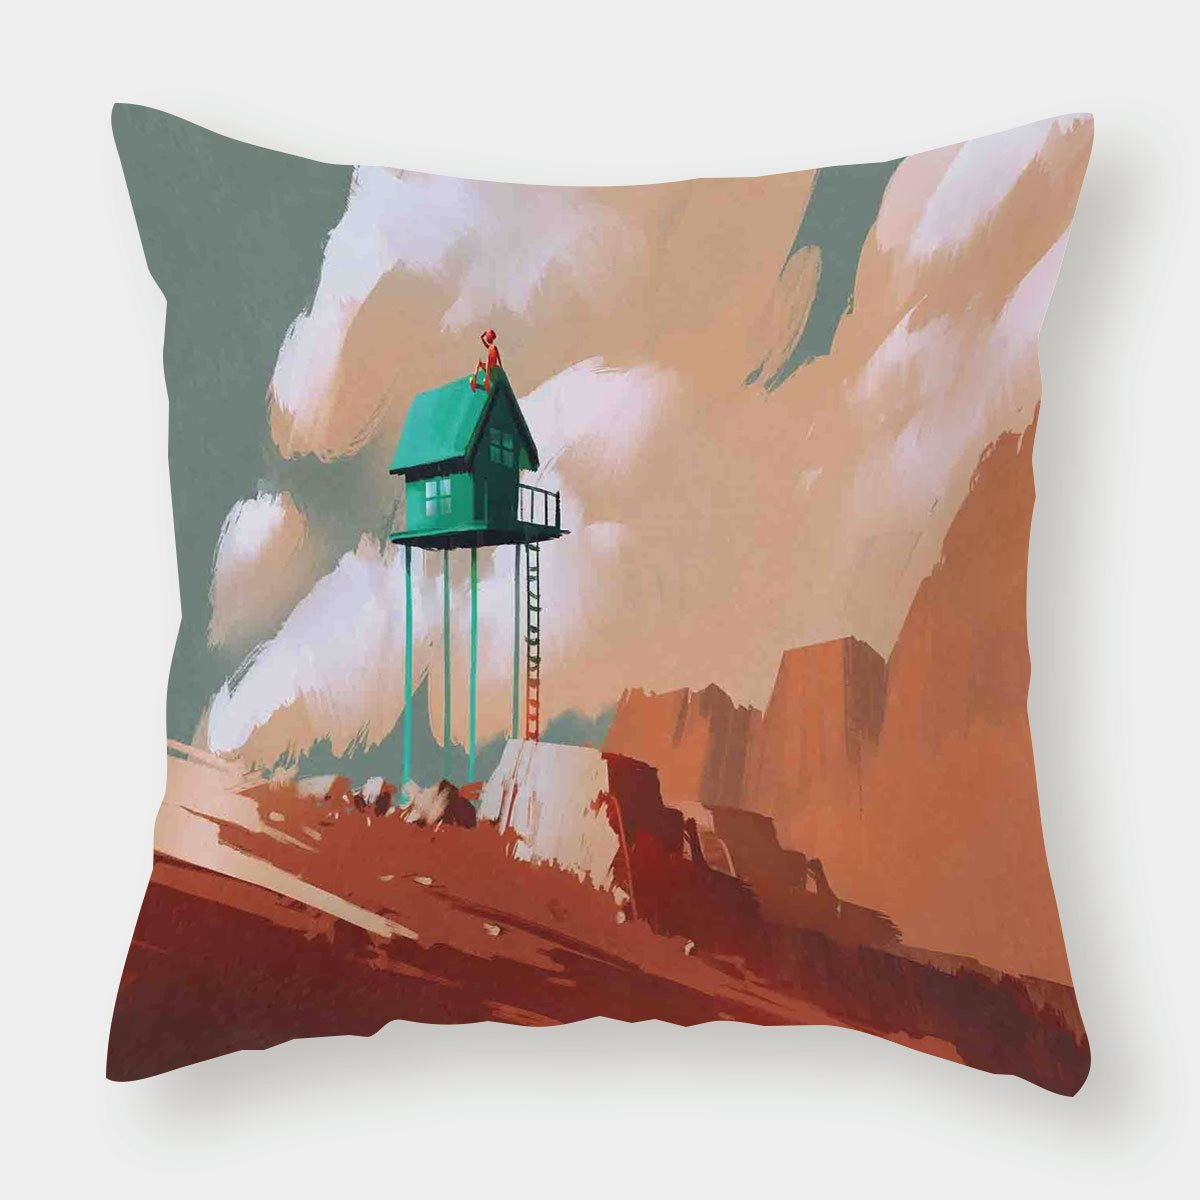 iPrint Satin Throw Pillow Cushion Cover,Fantasy Art House Decor,Little Wood House on Stone Hill with Boy on the Cloudy Roof Artprint,Tan Green,Decorative Square Accent Pillow Case